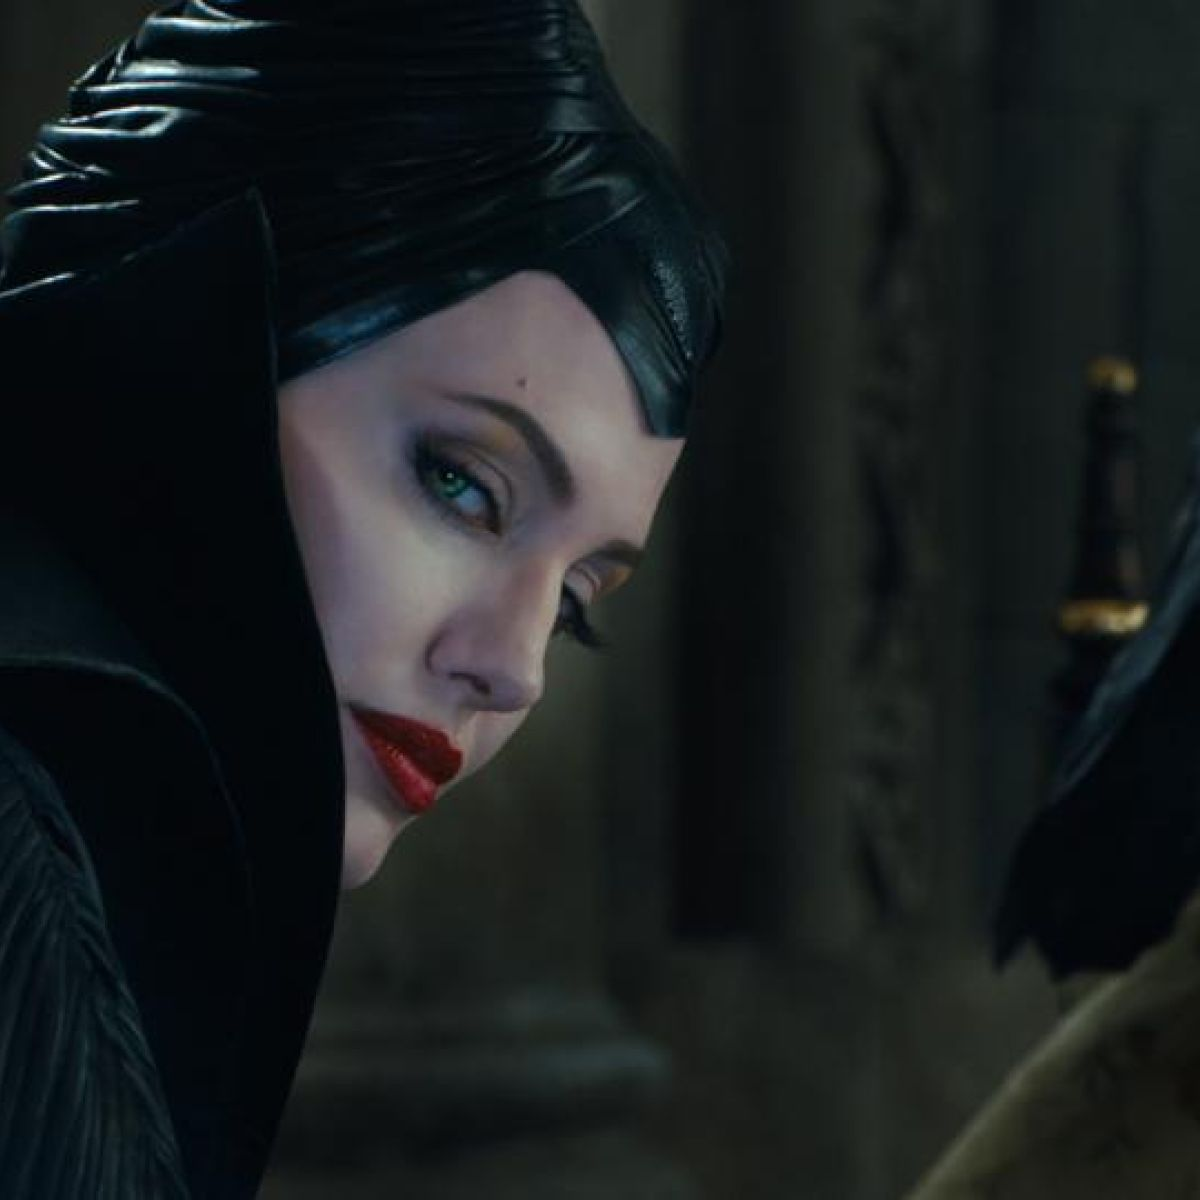 maleficent full movie free download with english subtitle